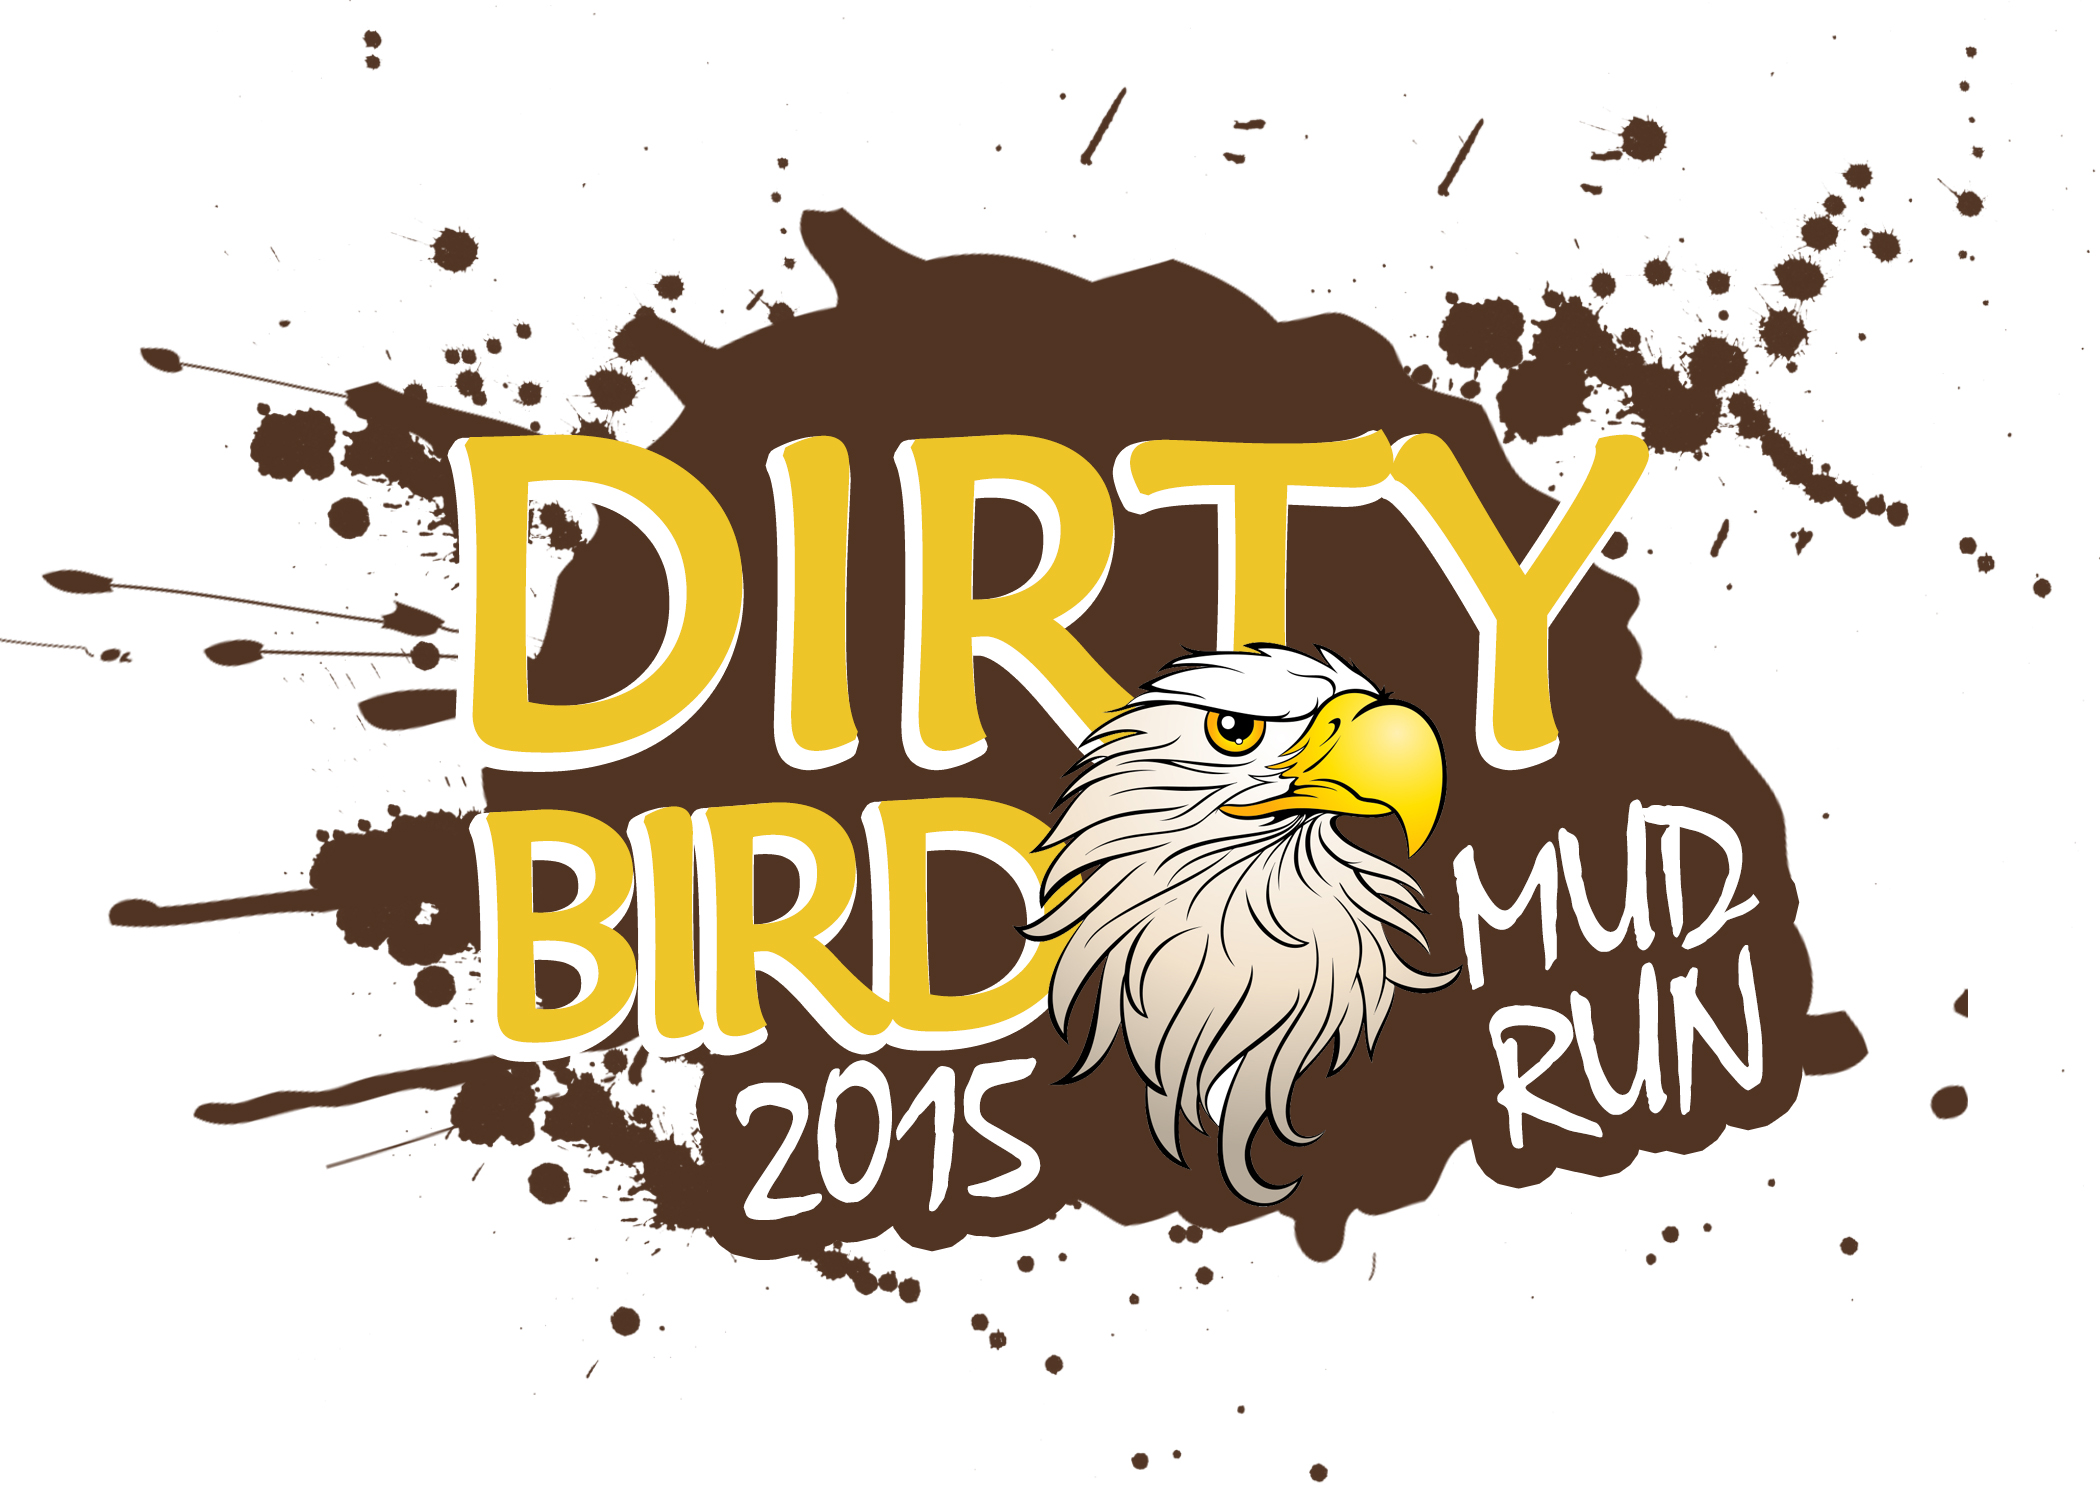 Dirty Bird Run